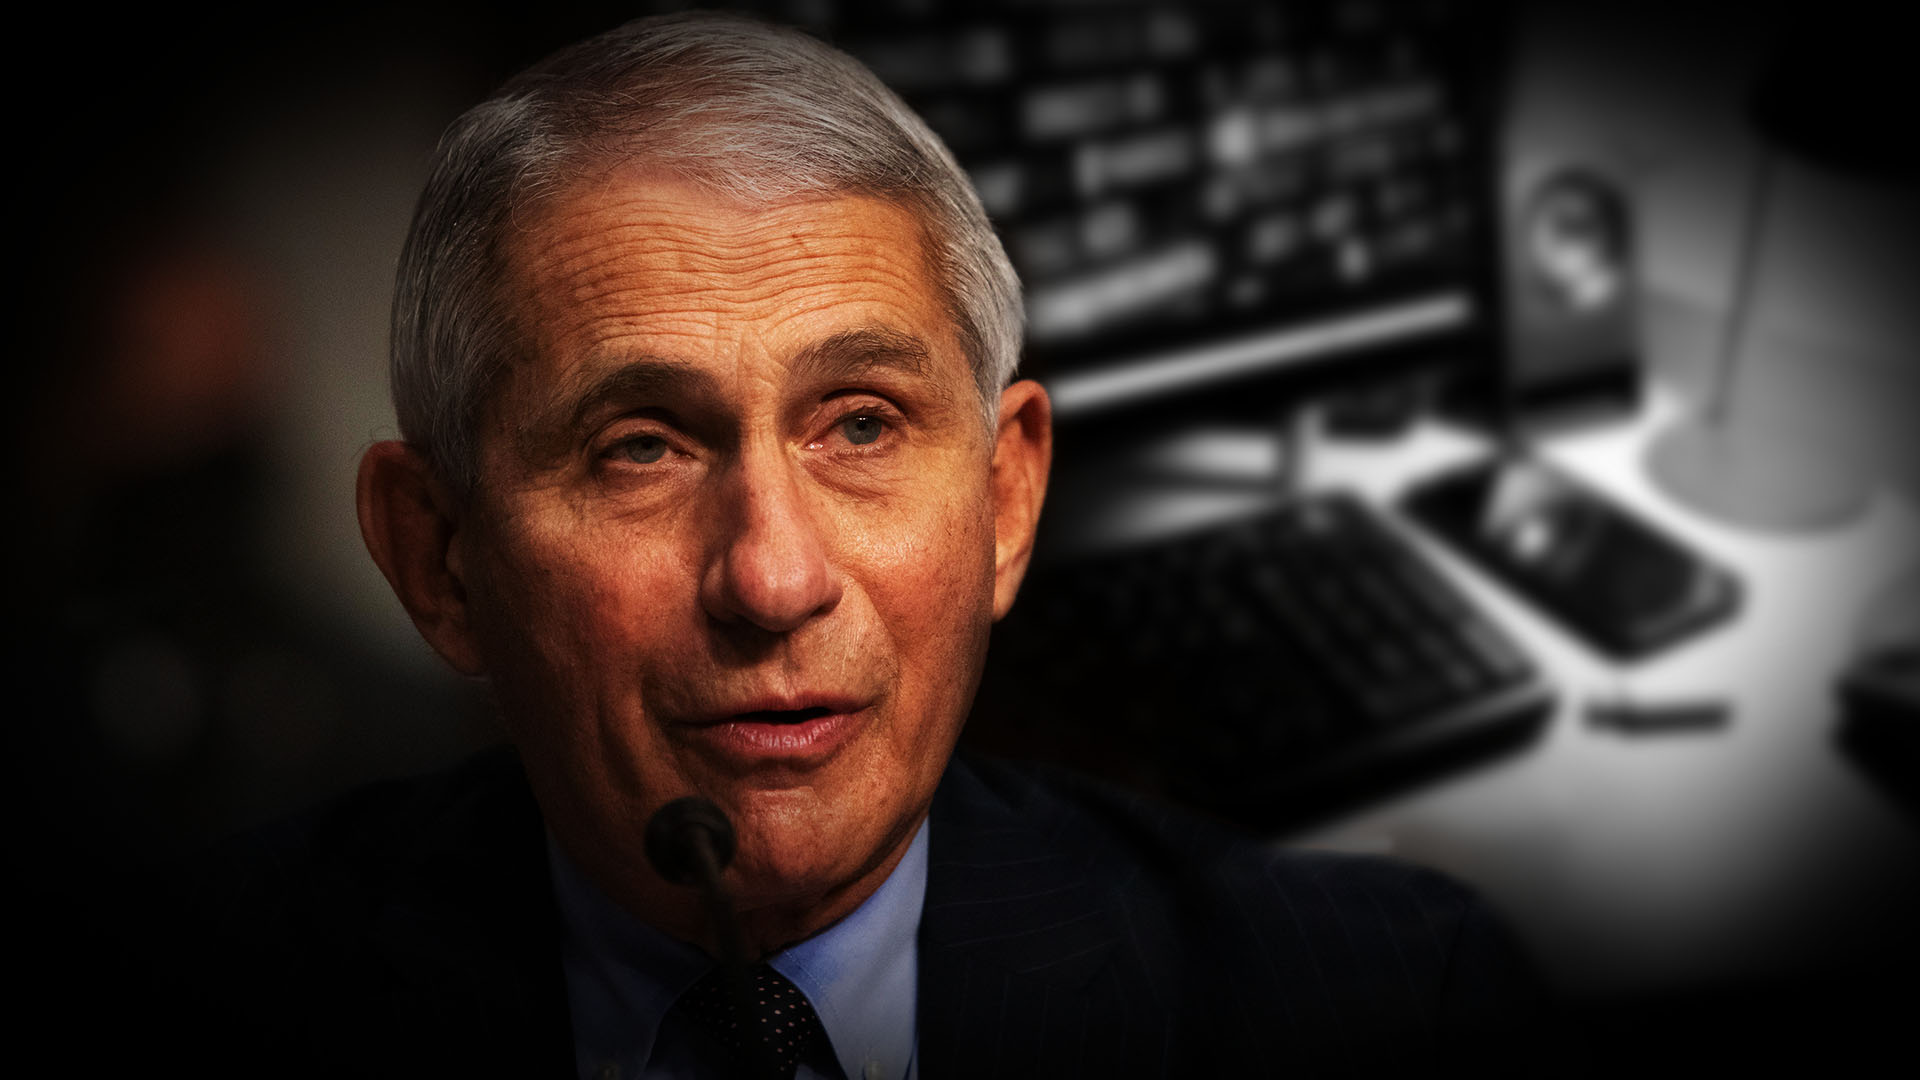 """Masks """"not really effective"""" says Fauci in Feb. 2020 email"""